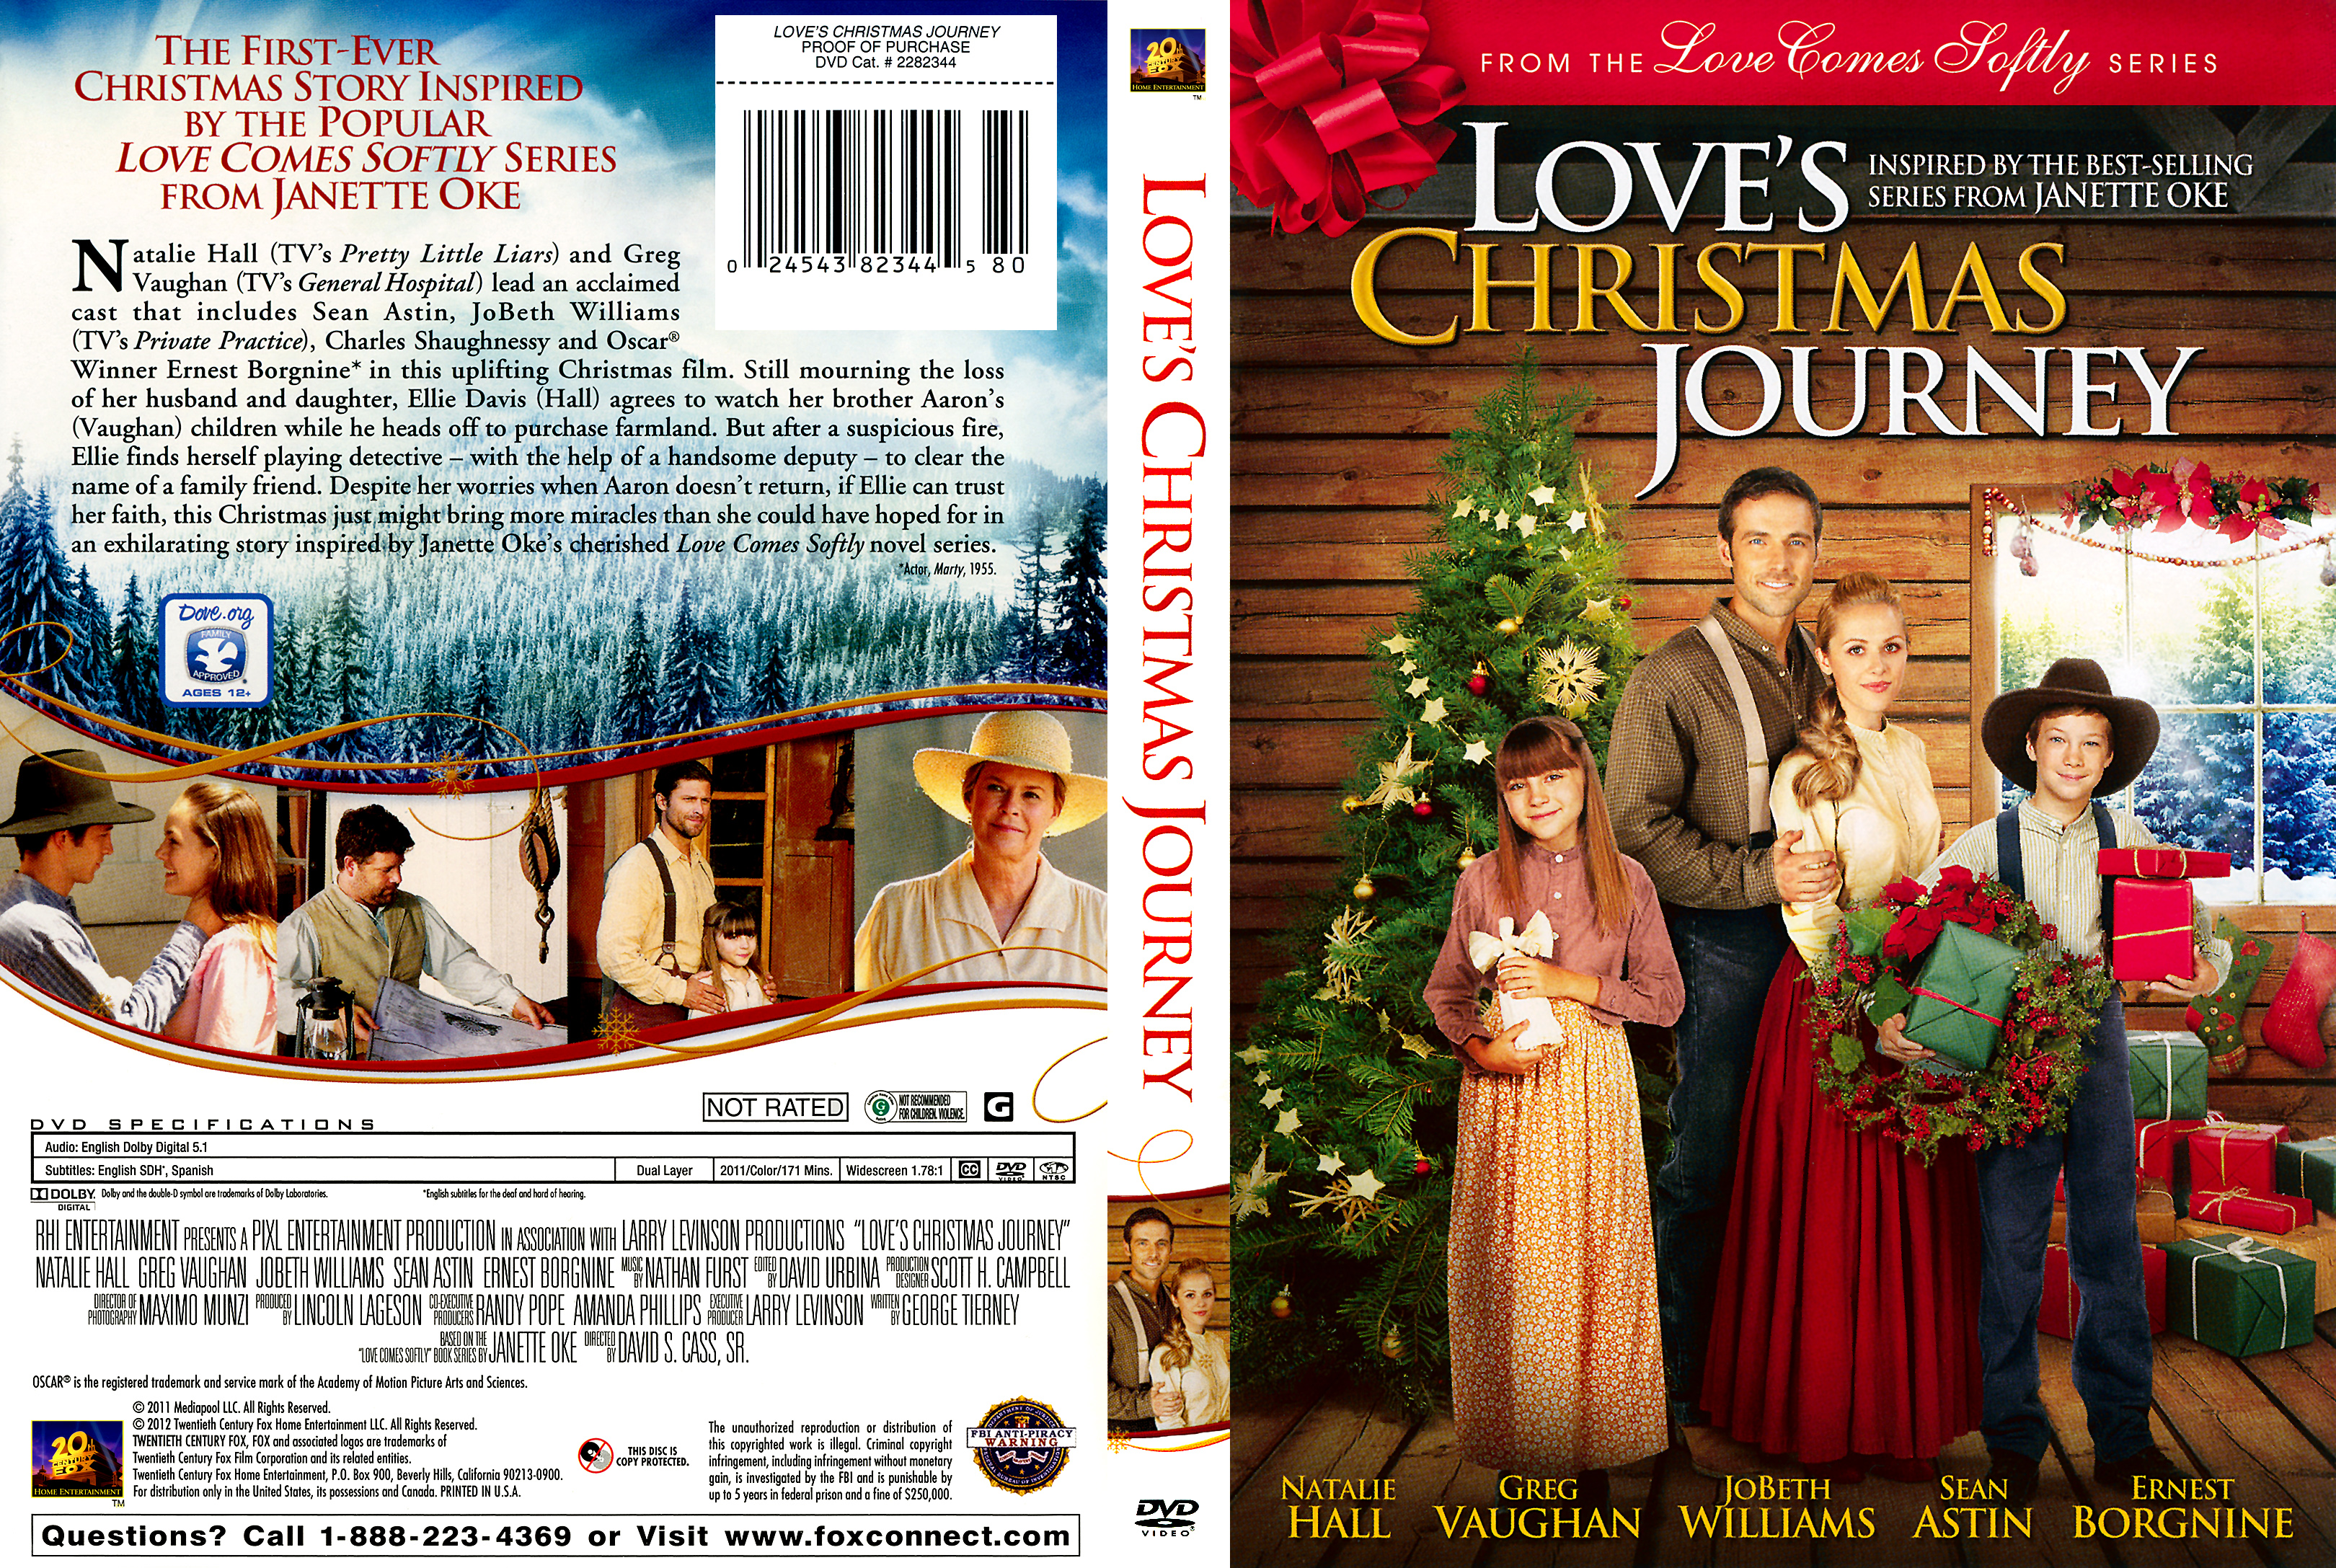 Loves Christmas Journey.Loves Christmas Journey Dvd Covers Cover Century Over